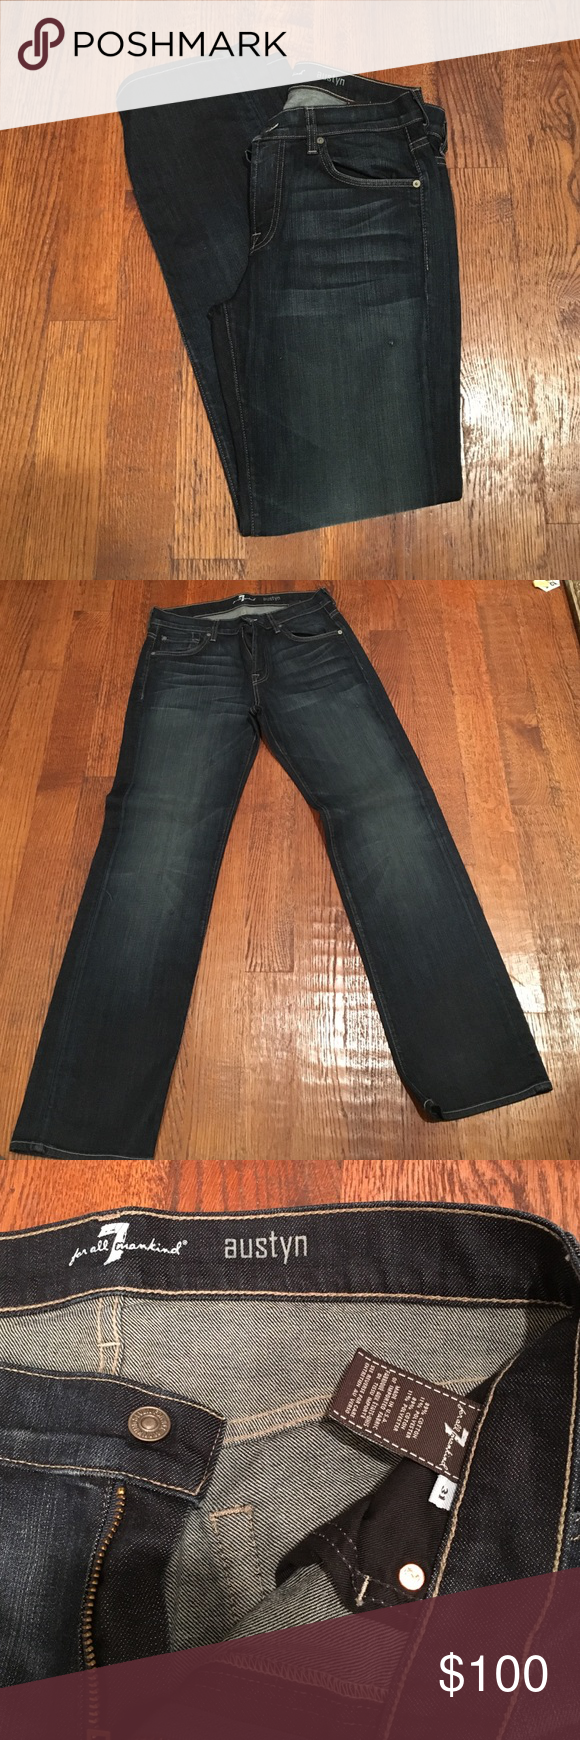 7 for All Mankind jeans 7 for All Mankind jeans. Size 31 7 For All Mankind Jeans